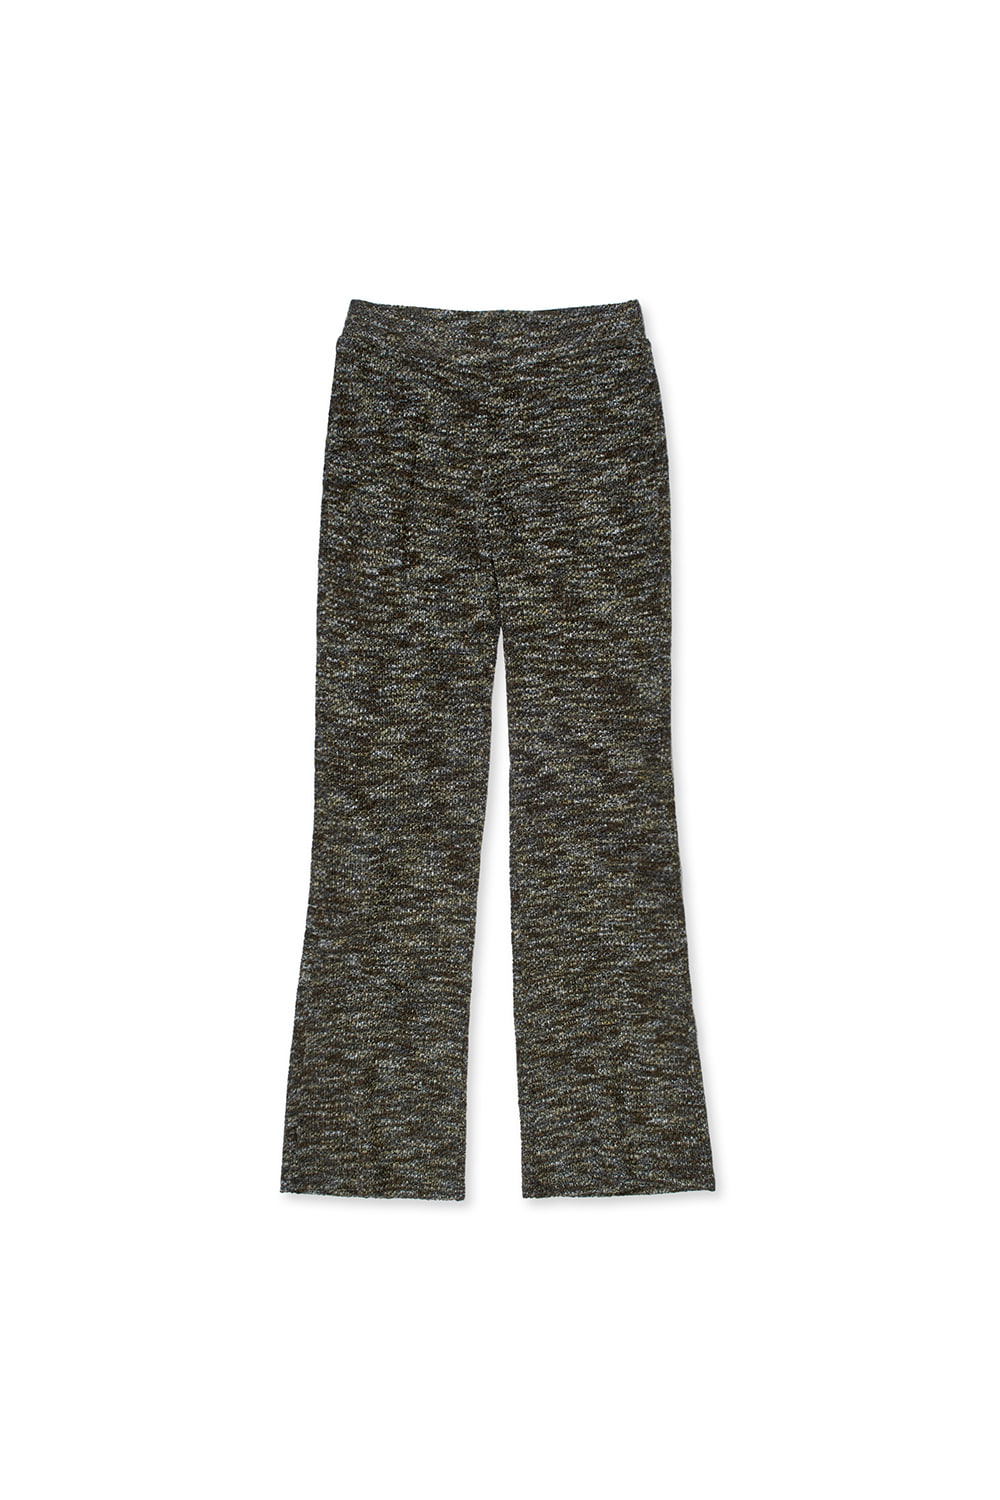 MULTI BOOTSCUT PANTS KS [MIX BROWN]